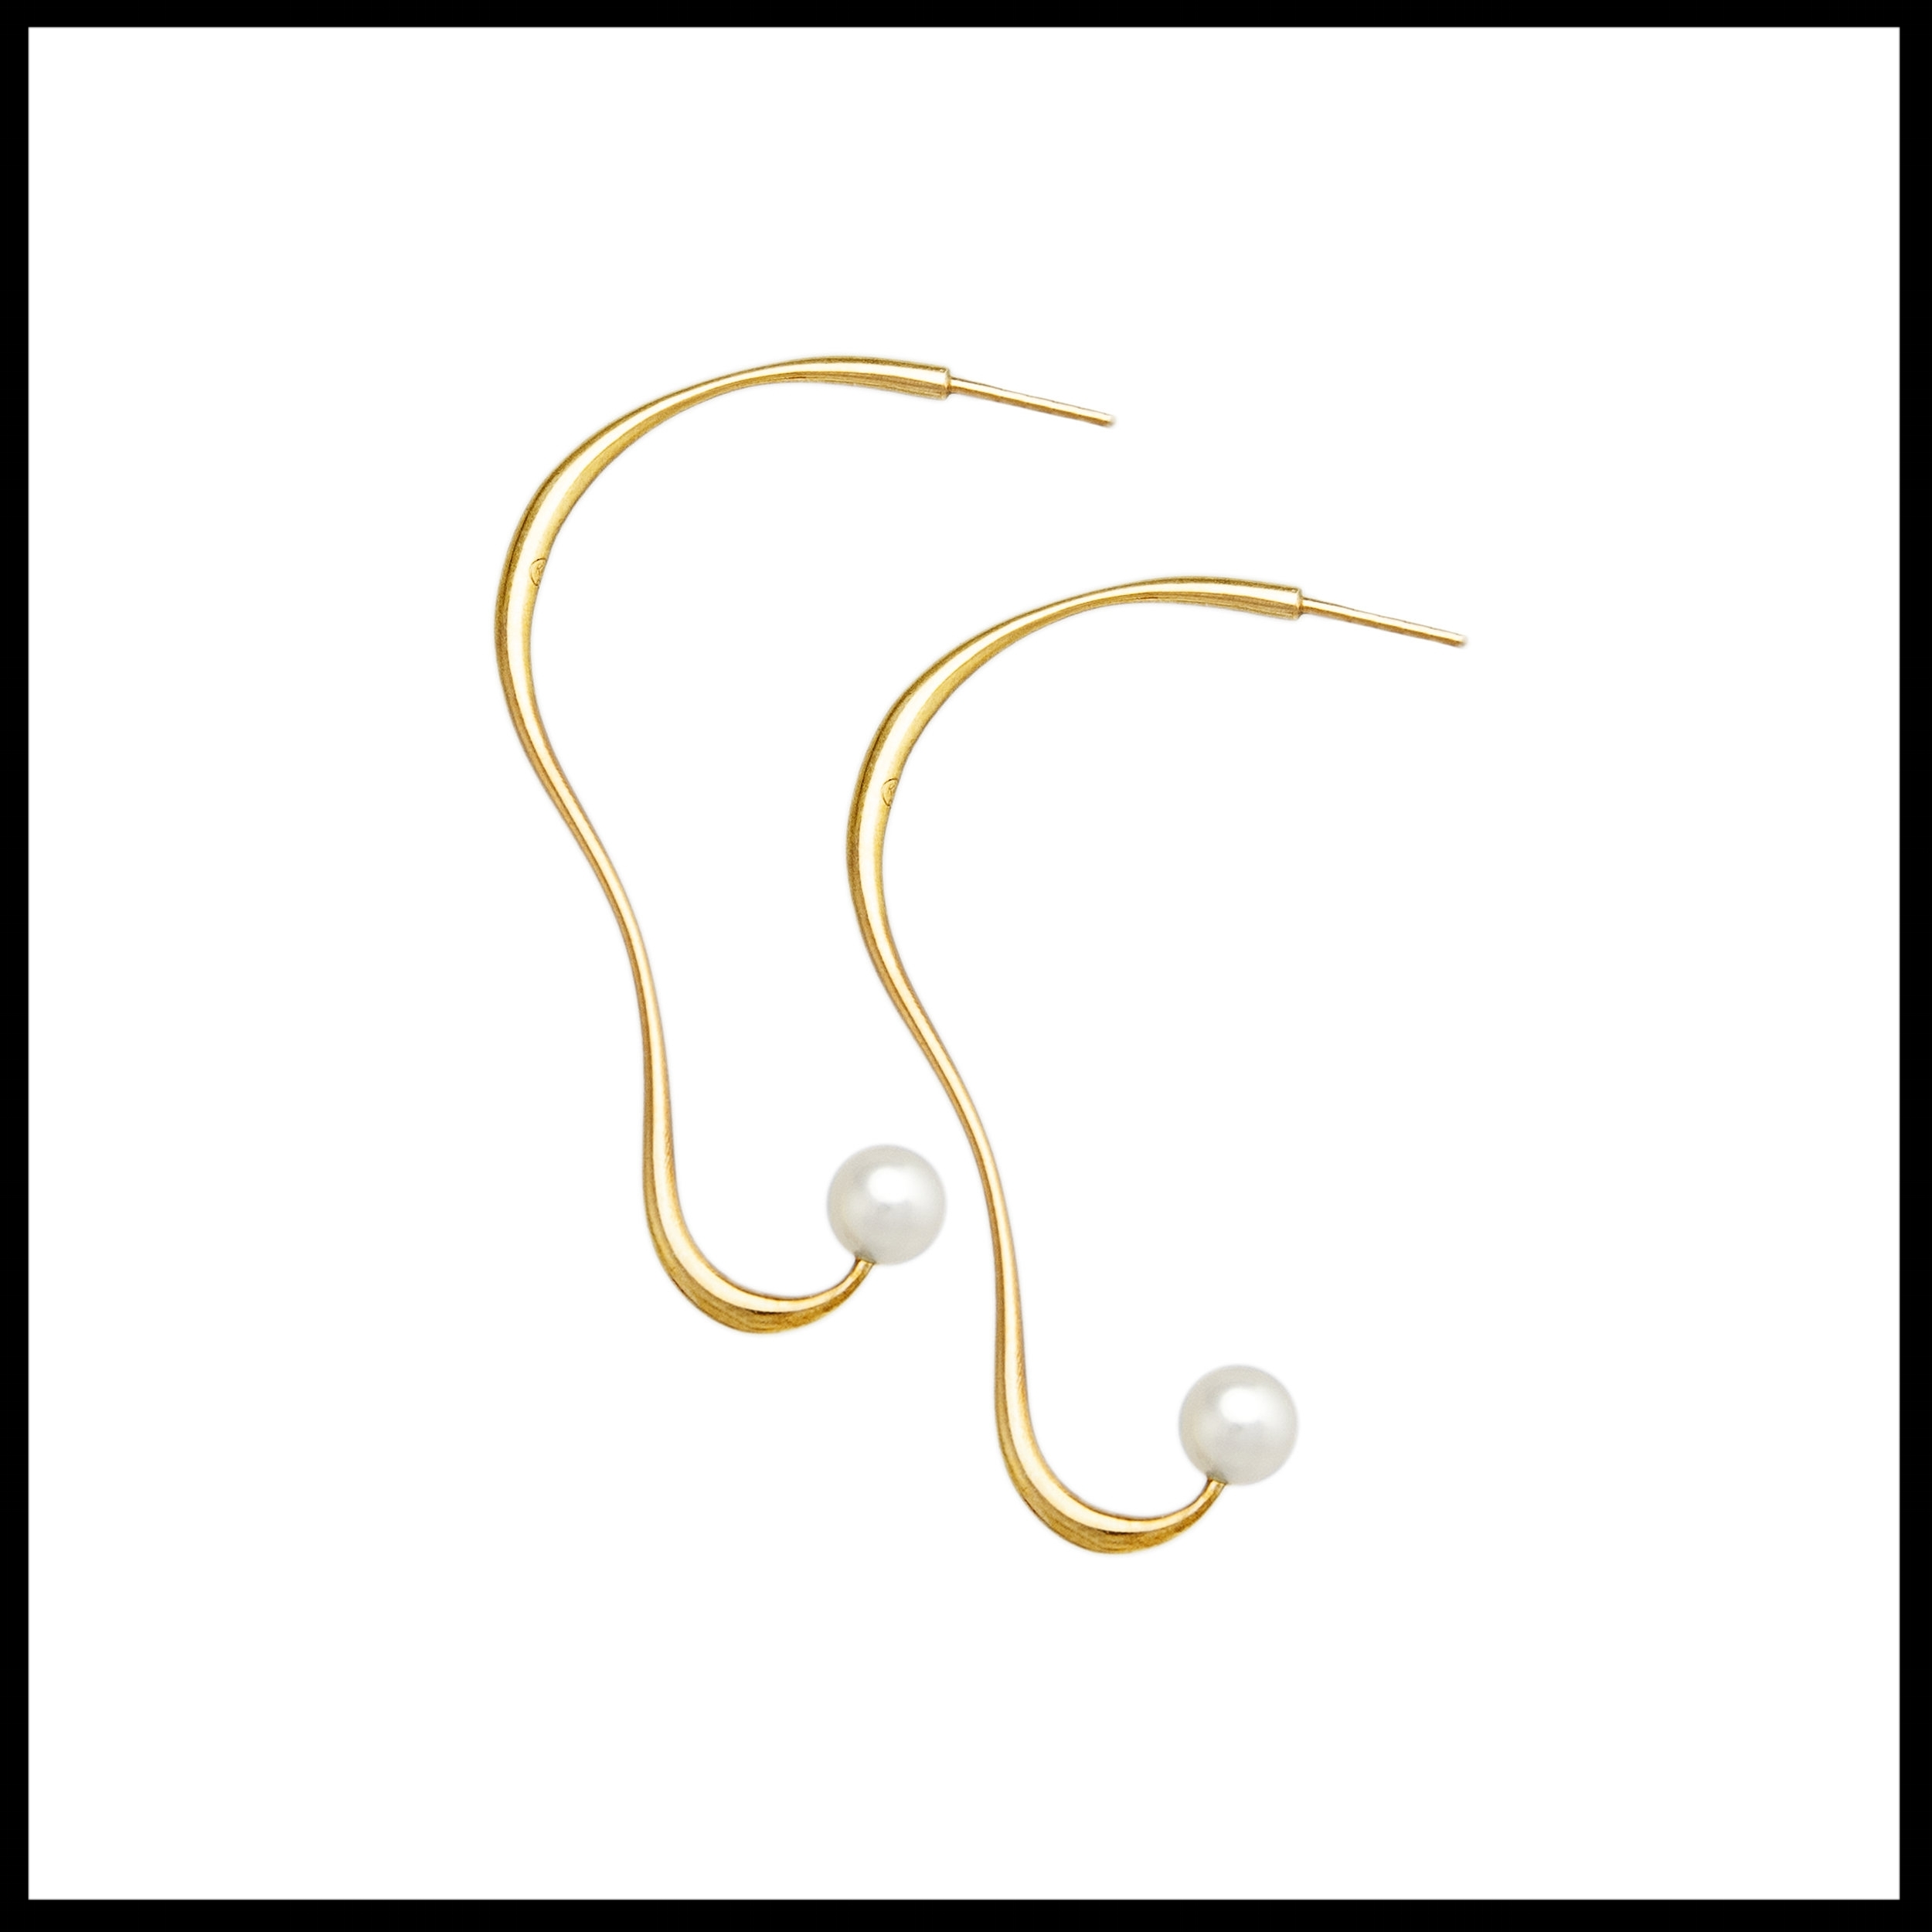 Gold Earrings Sound with Pearls